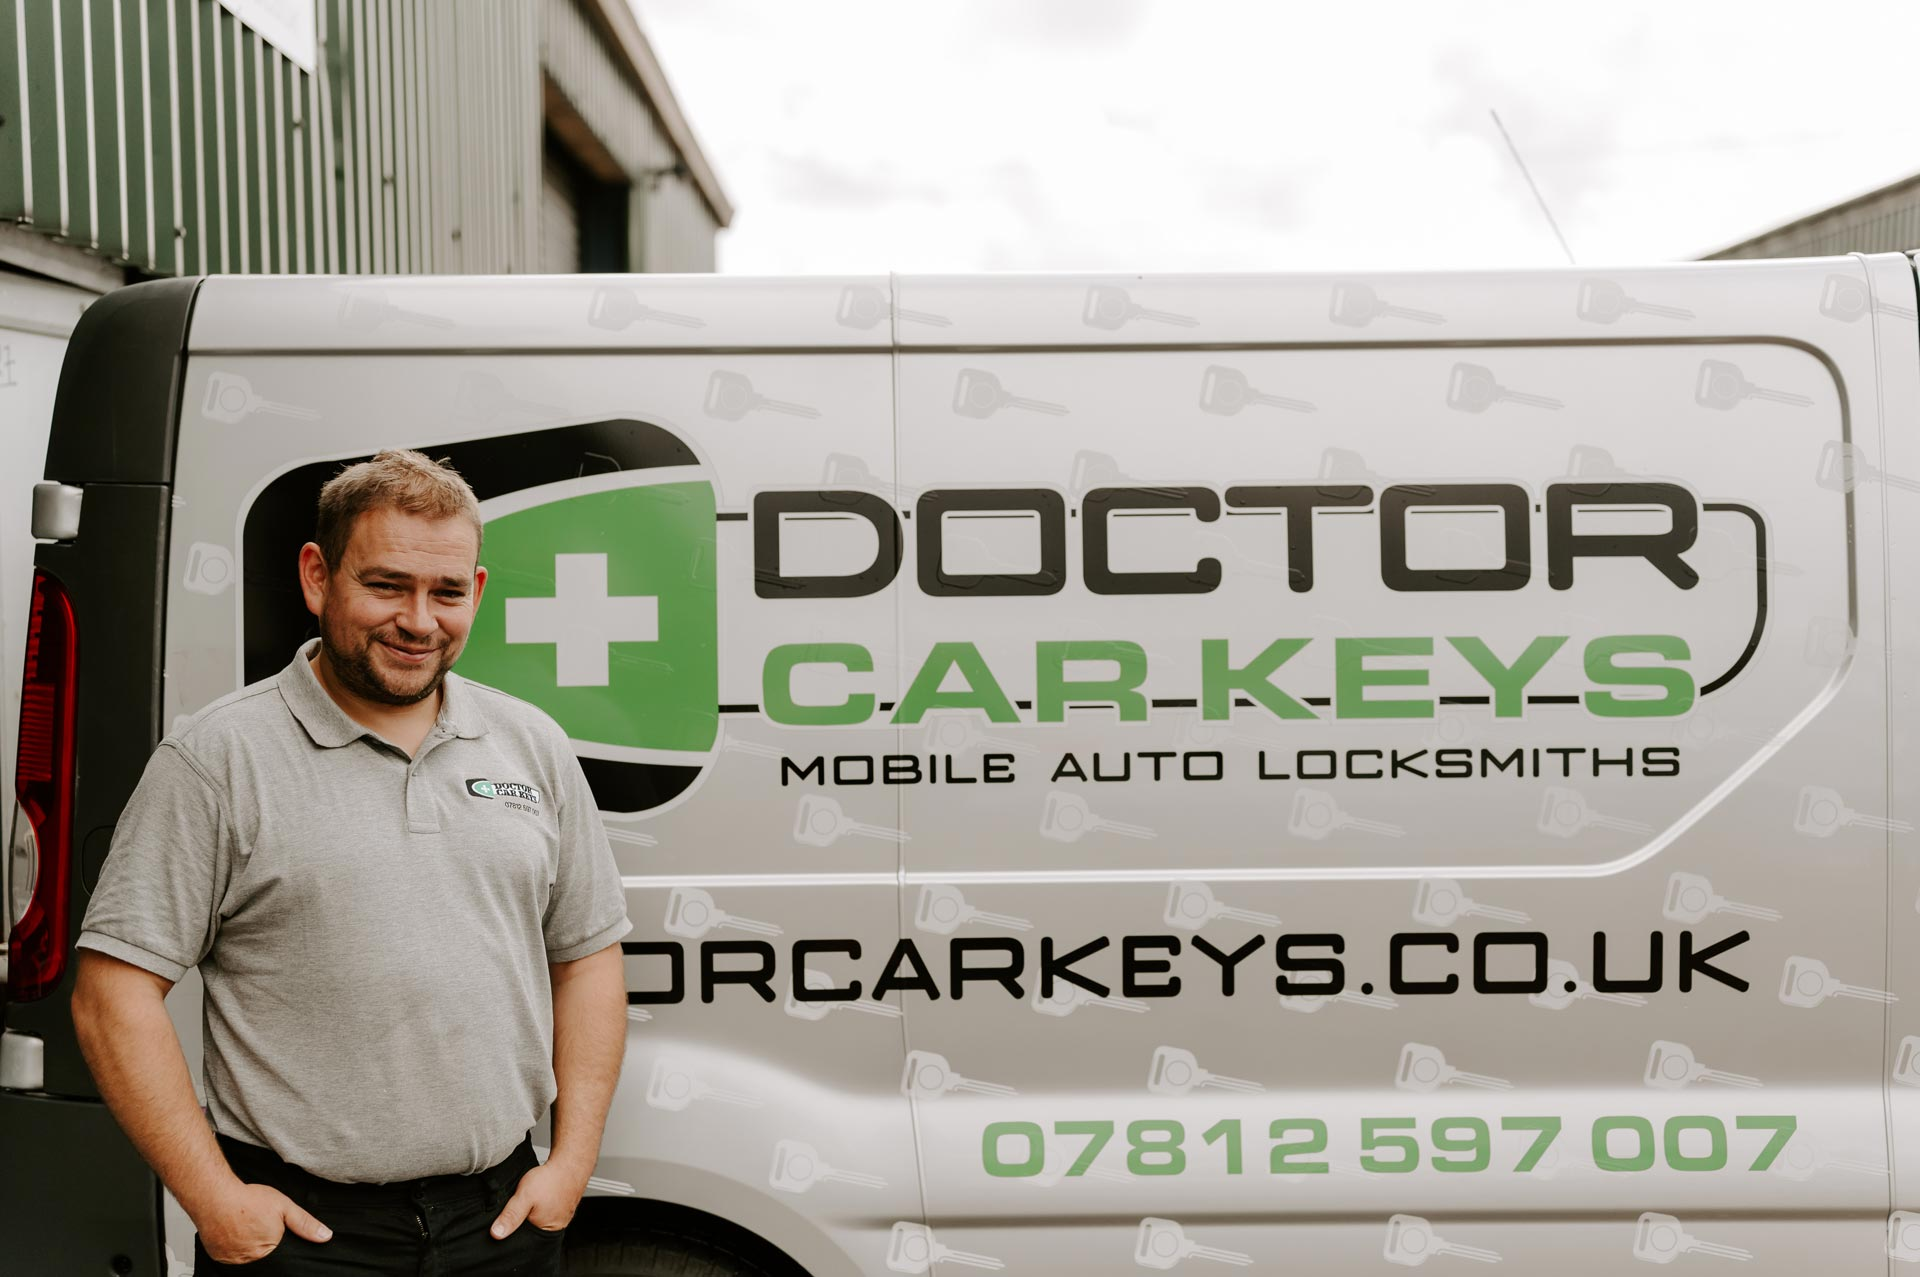 Auto Locksmiths in Wokingham